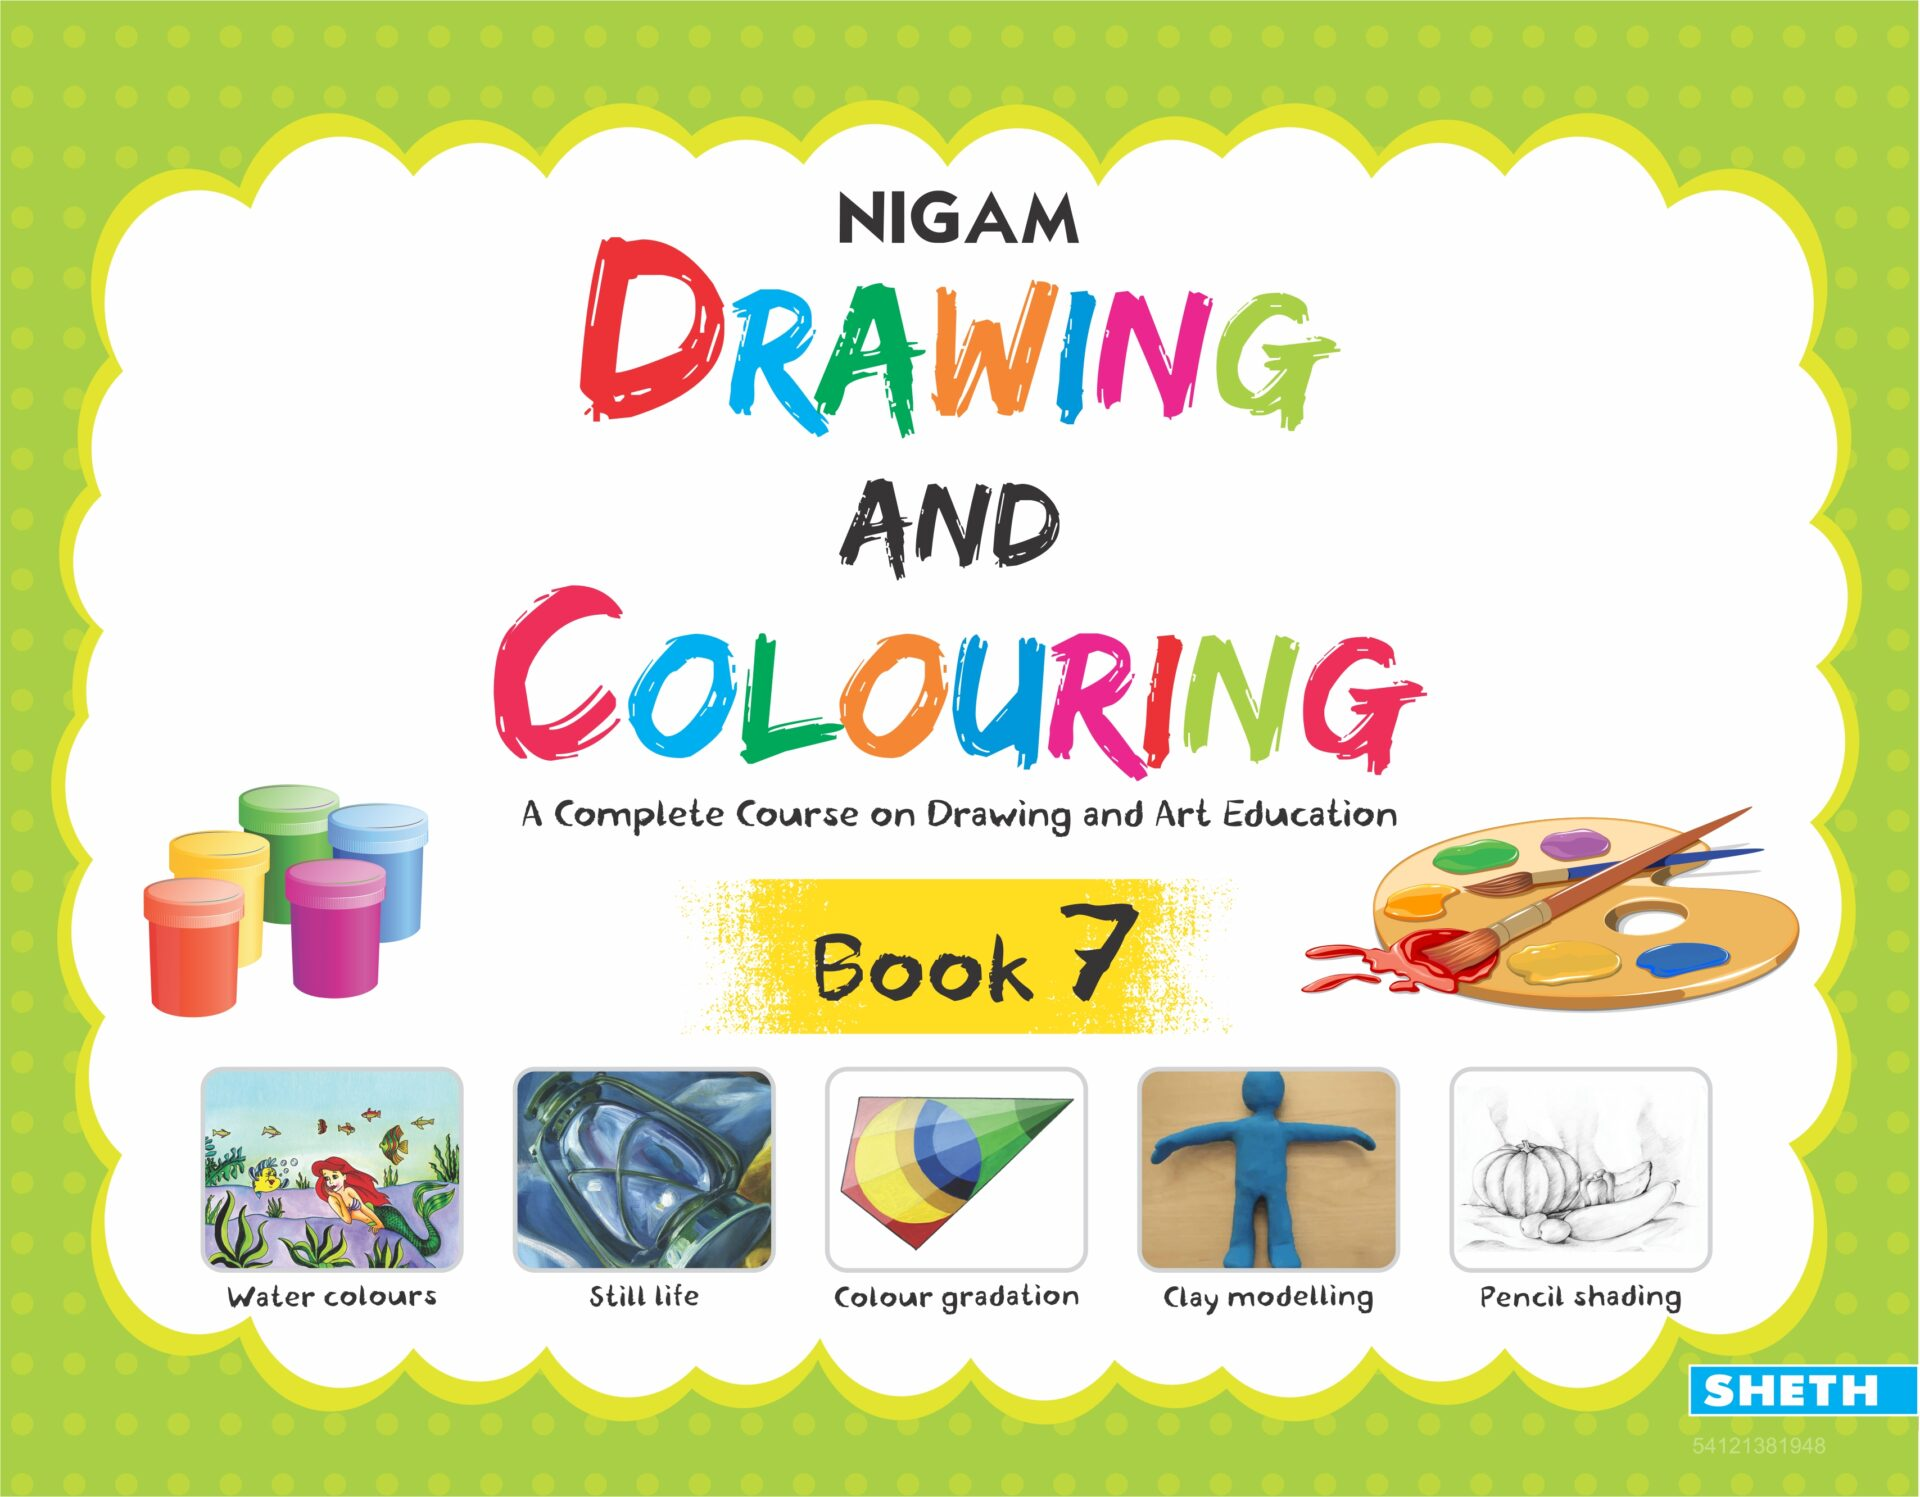 Nigam Drawing and Colouring Book 7 1